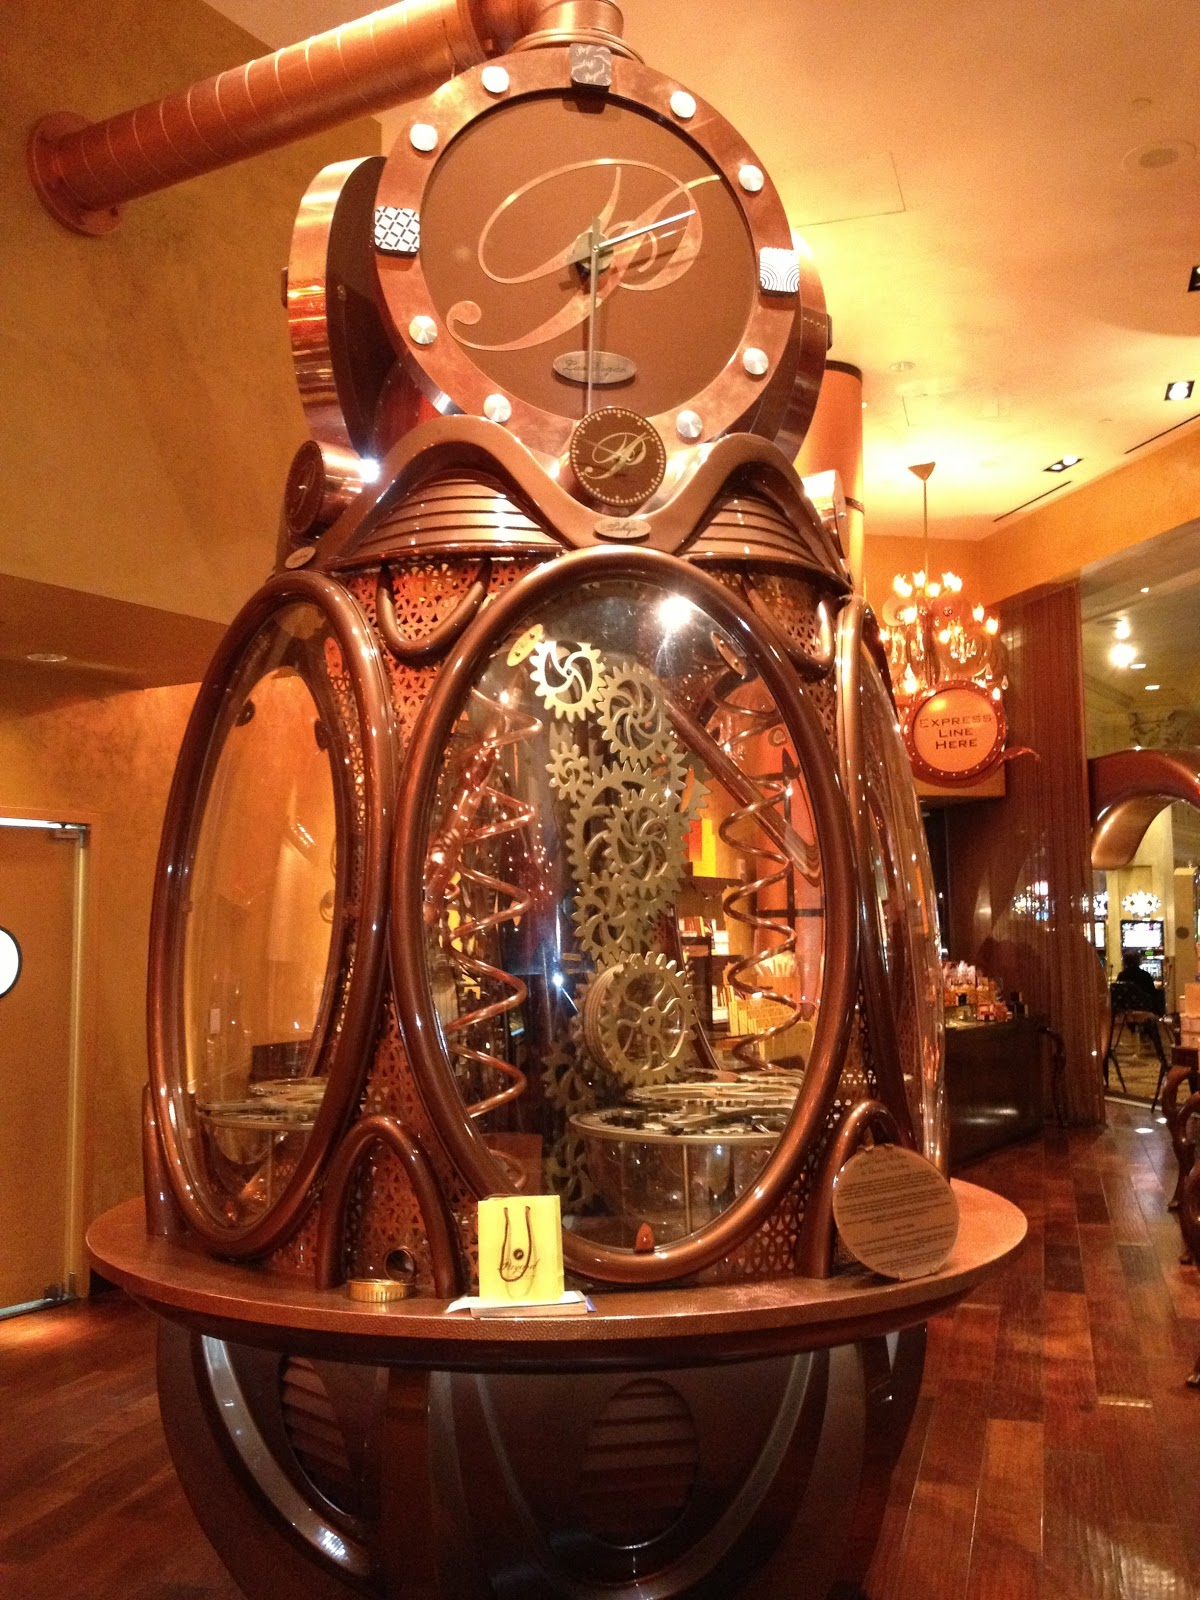 Payard Chocolate Clock Has a Chocolate Clock That